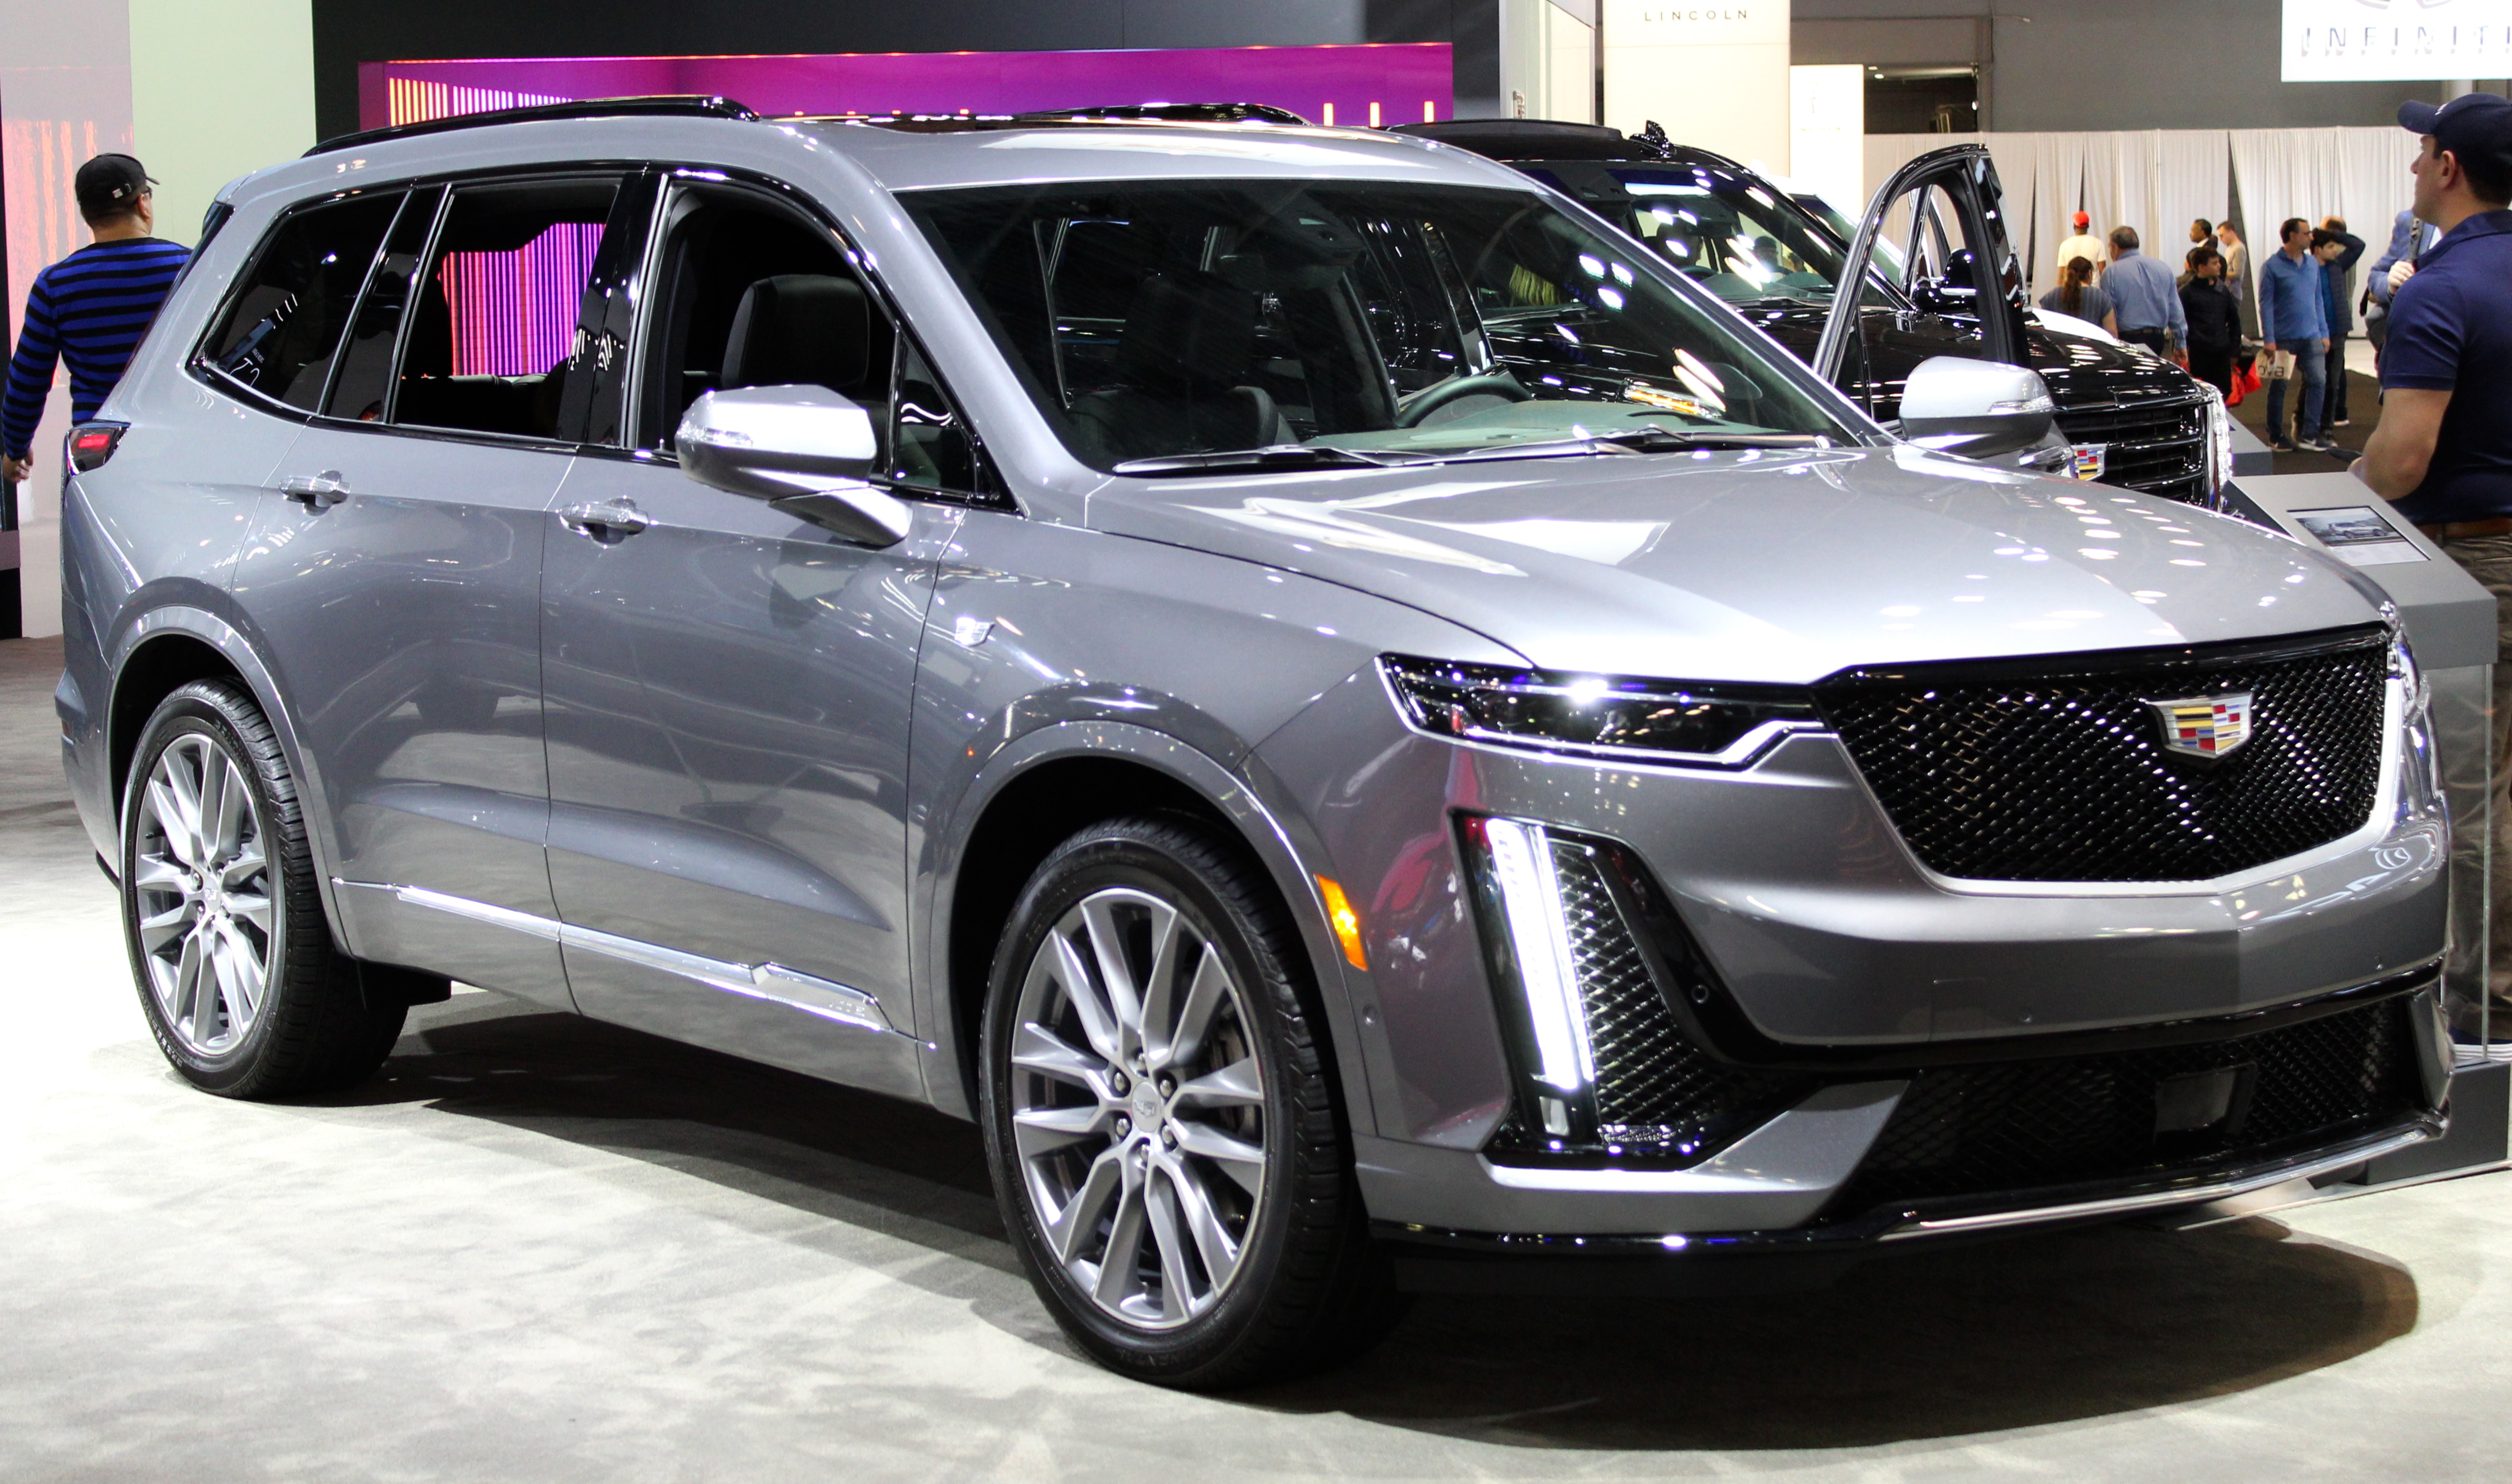 2020 Cadillac Xt5 Review Interior Price Specs >> Cadillac Xt6 Wikipedia